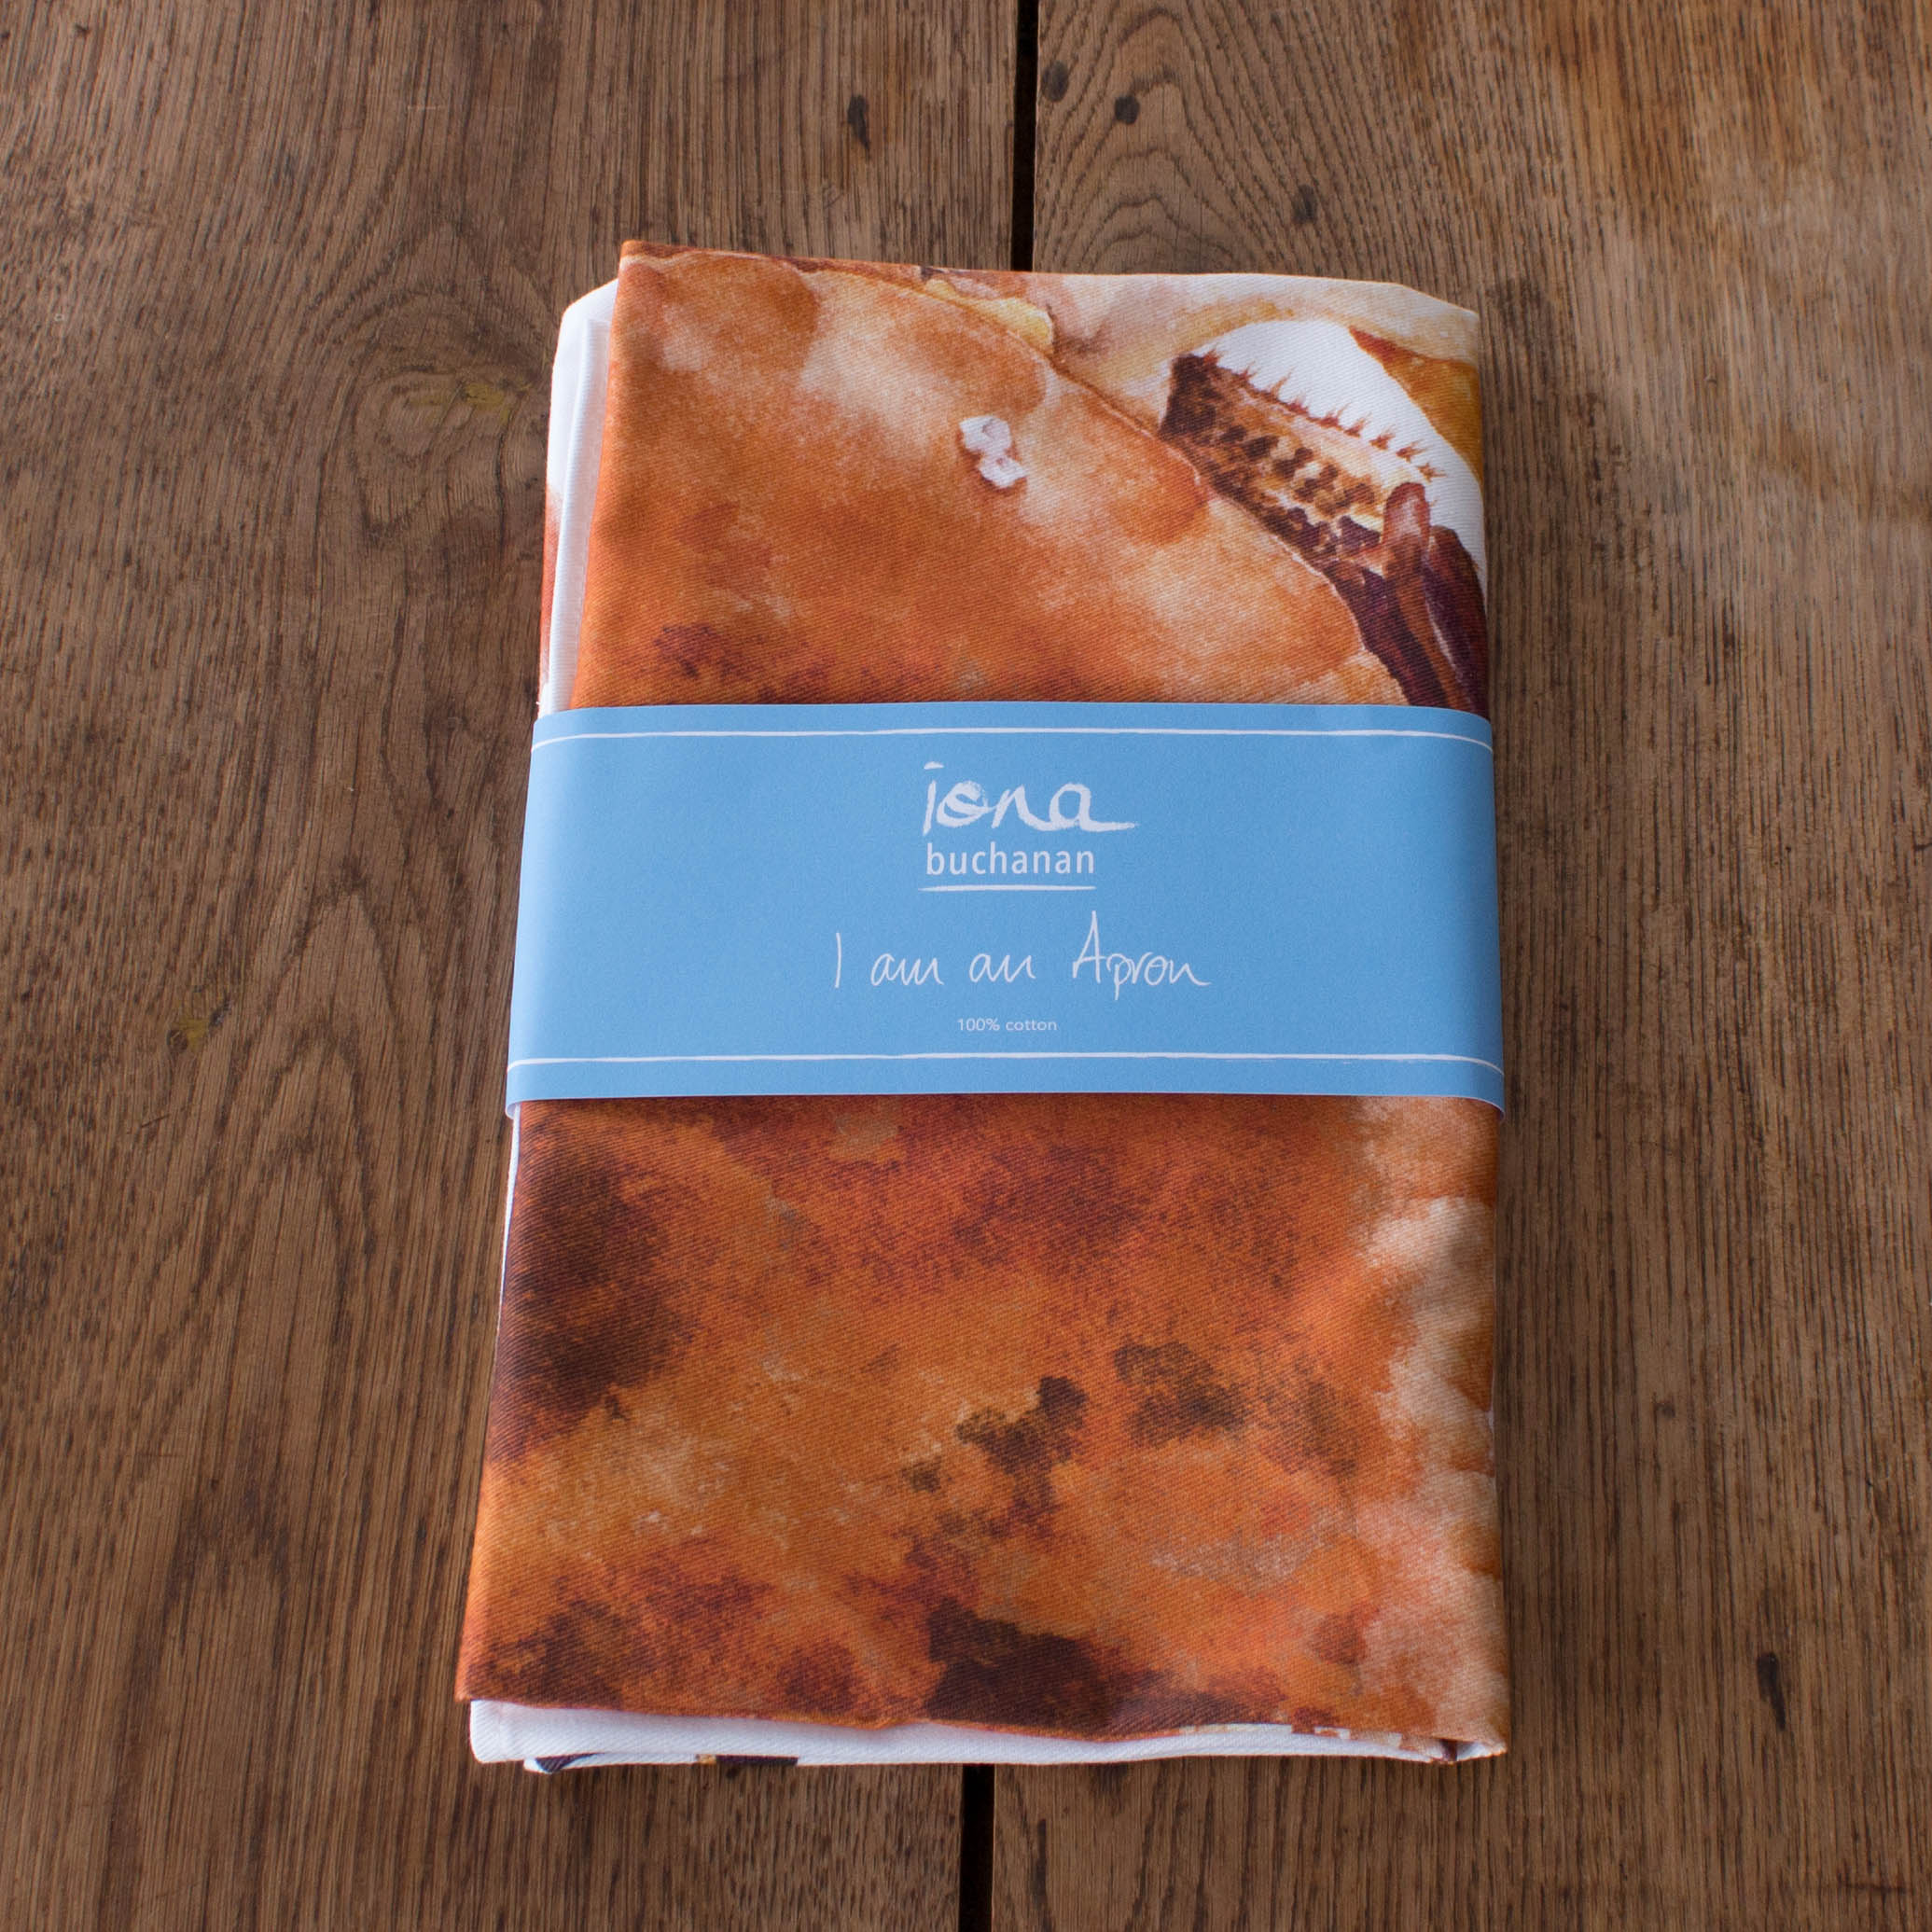 Apron - crab design in packaging